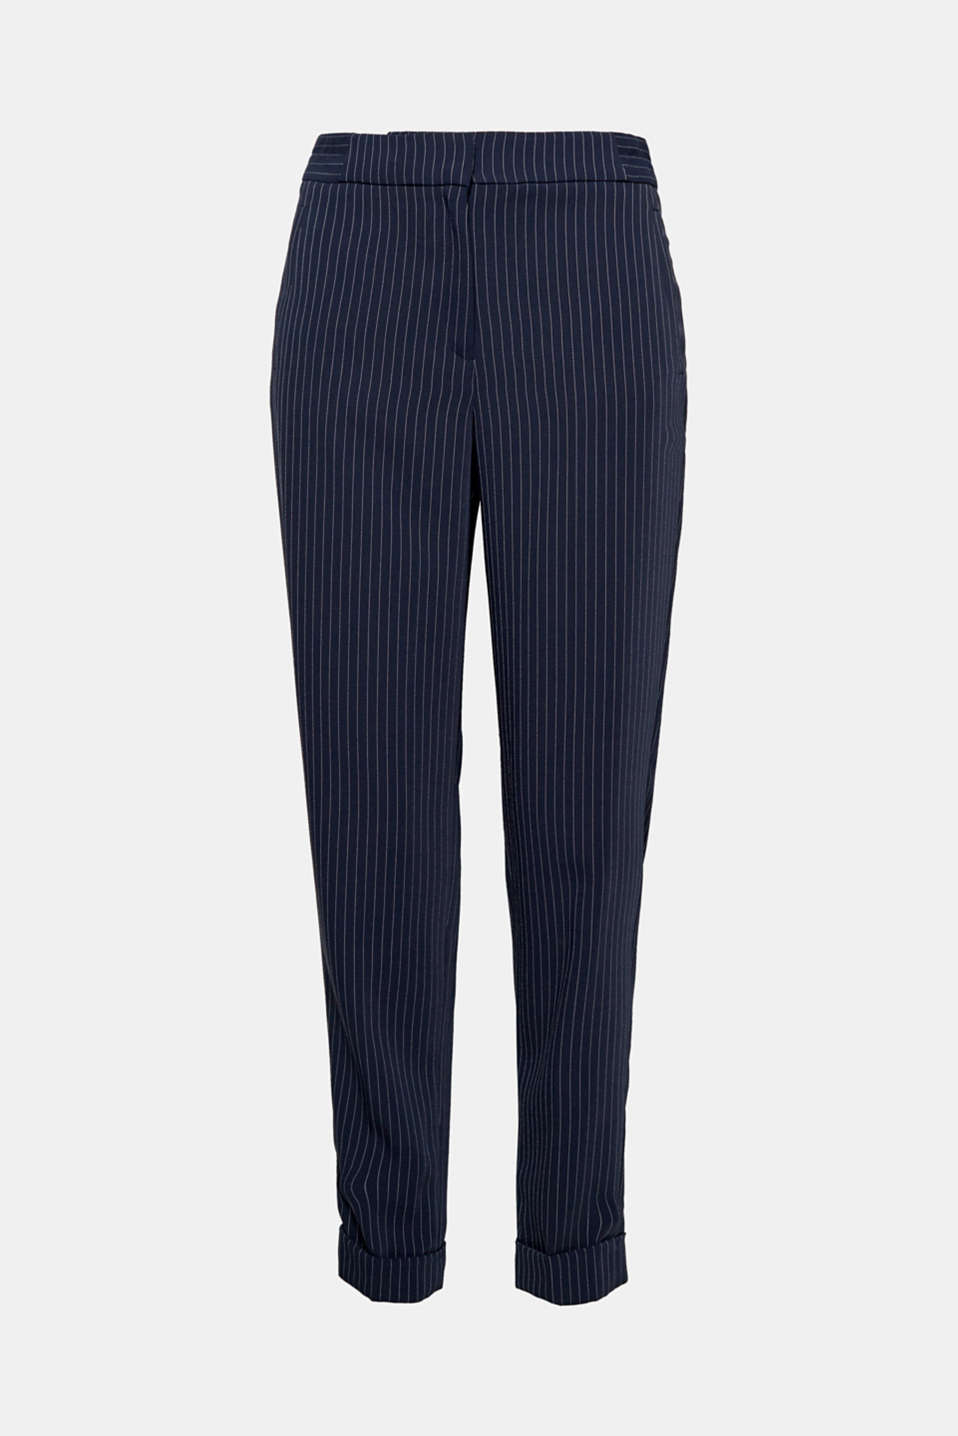 The partially elasticated waistband makes these flowing pinstripe trousers as comfy as tracksuit bottoms!